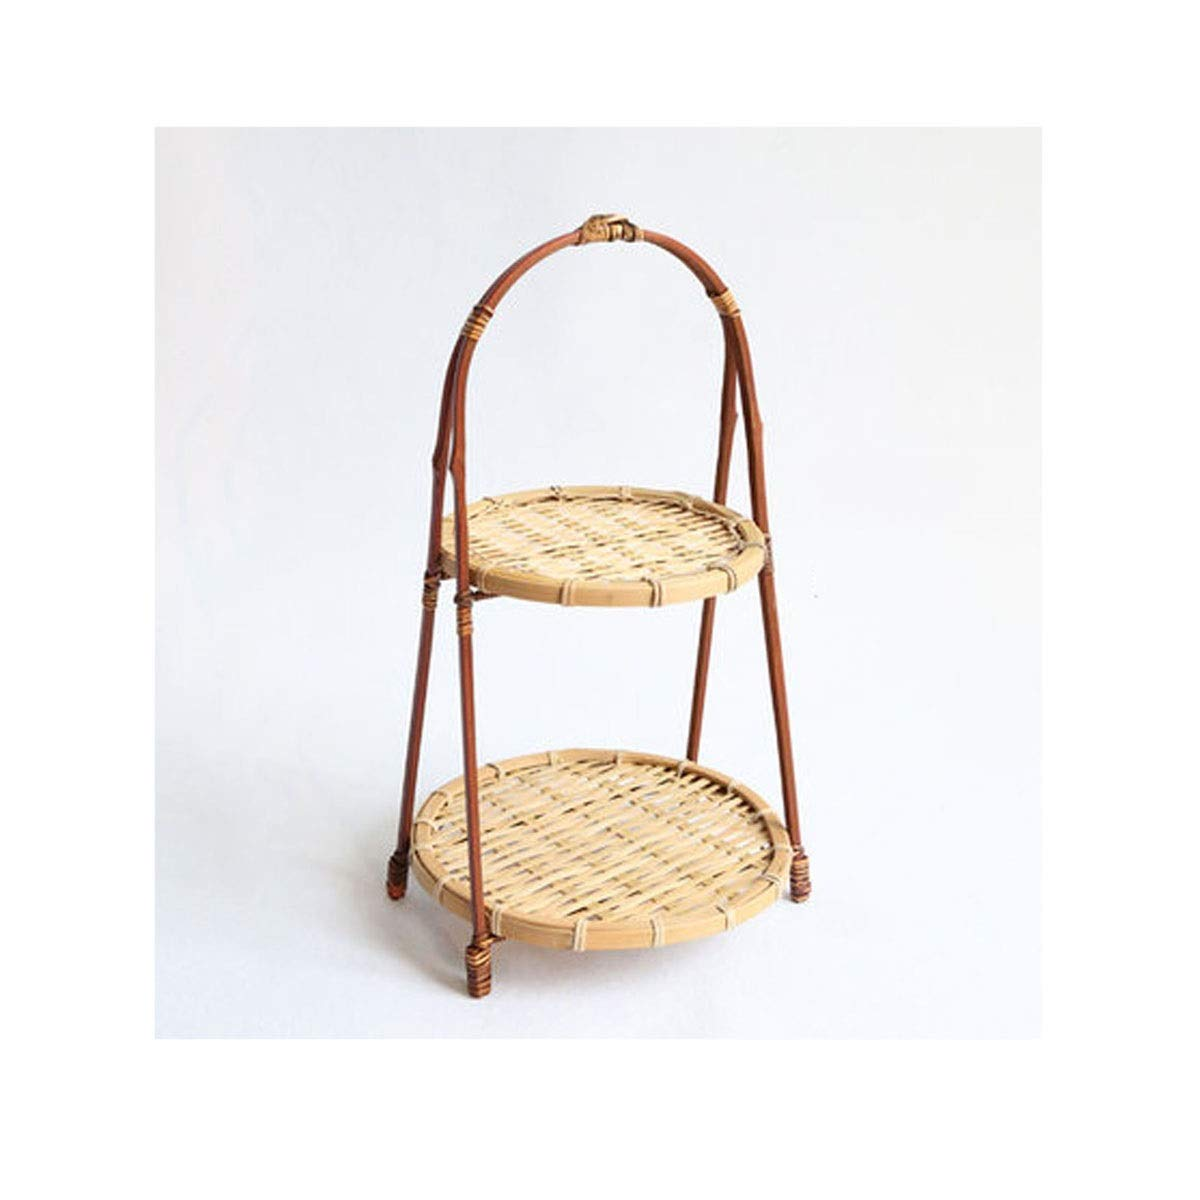 QINRUIKUANGSHAN Bamboo Sweet Dessert Stand, Afternoon Tea Dessert Table, Old Dried Fruit Plate, Snack Plate, Double-Layer Fruit Plate, Handmade Bamboo Bread Basket, (Color : Natural) by QINRUIKUANGSHAN